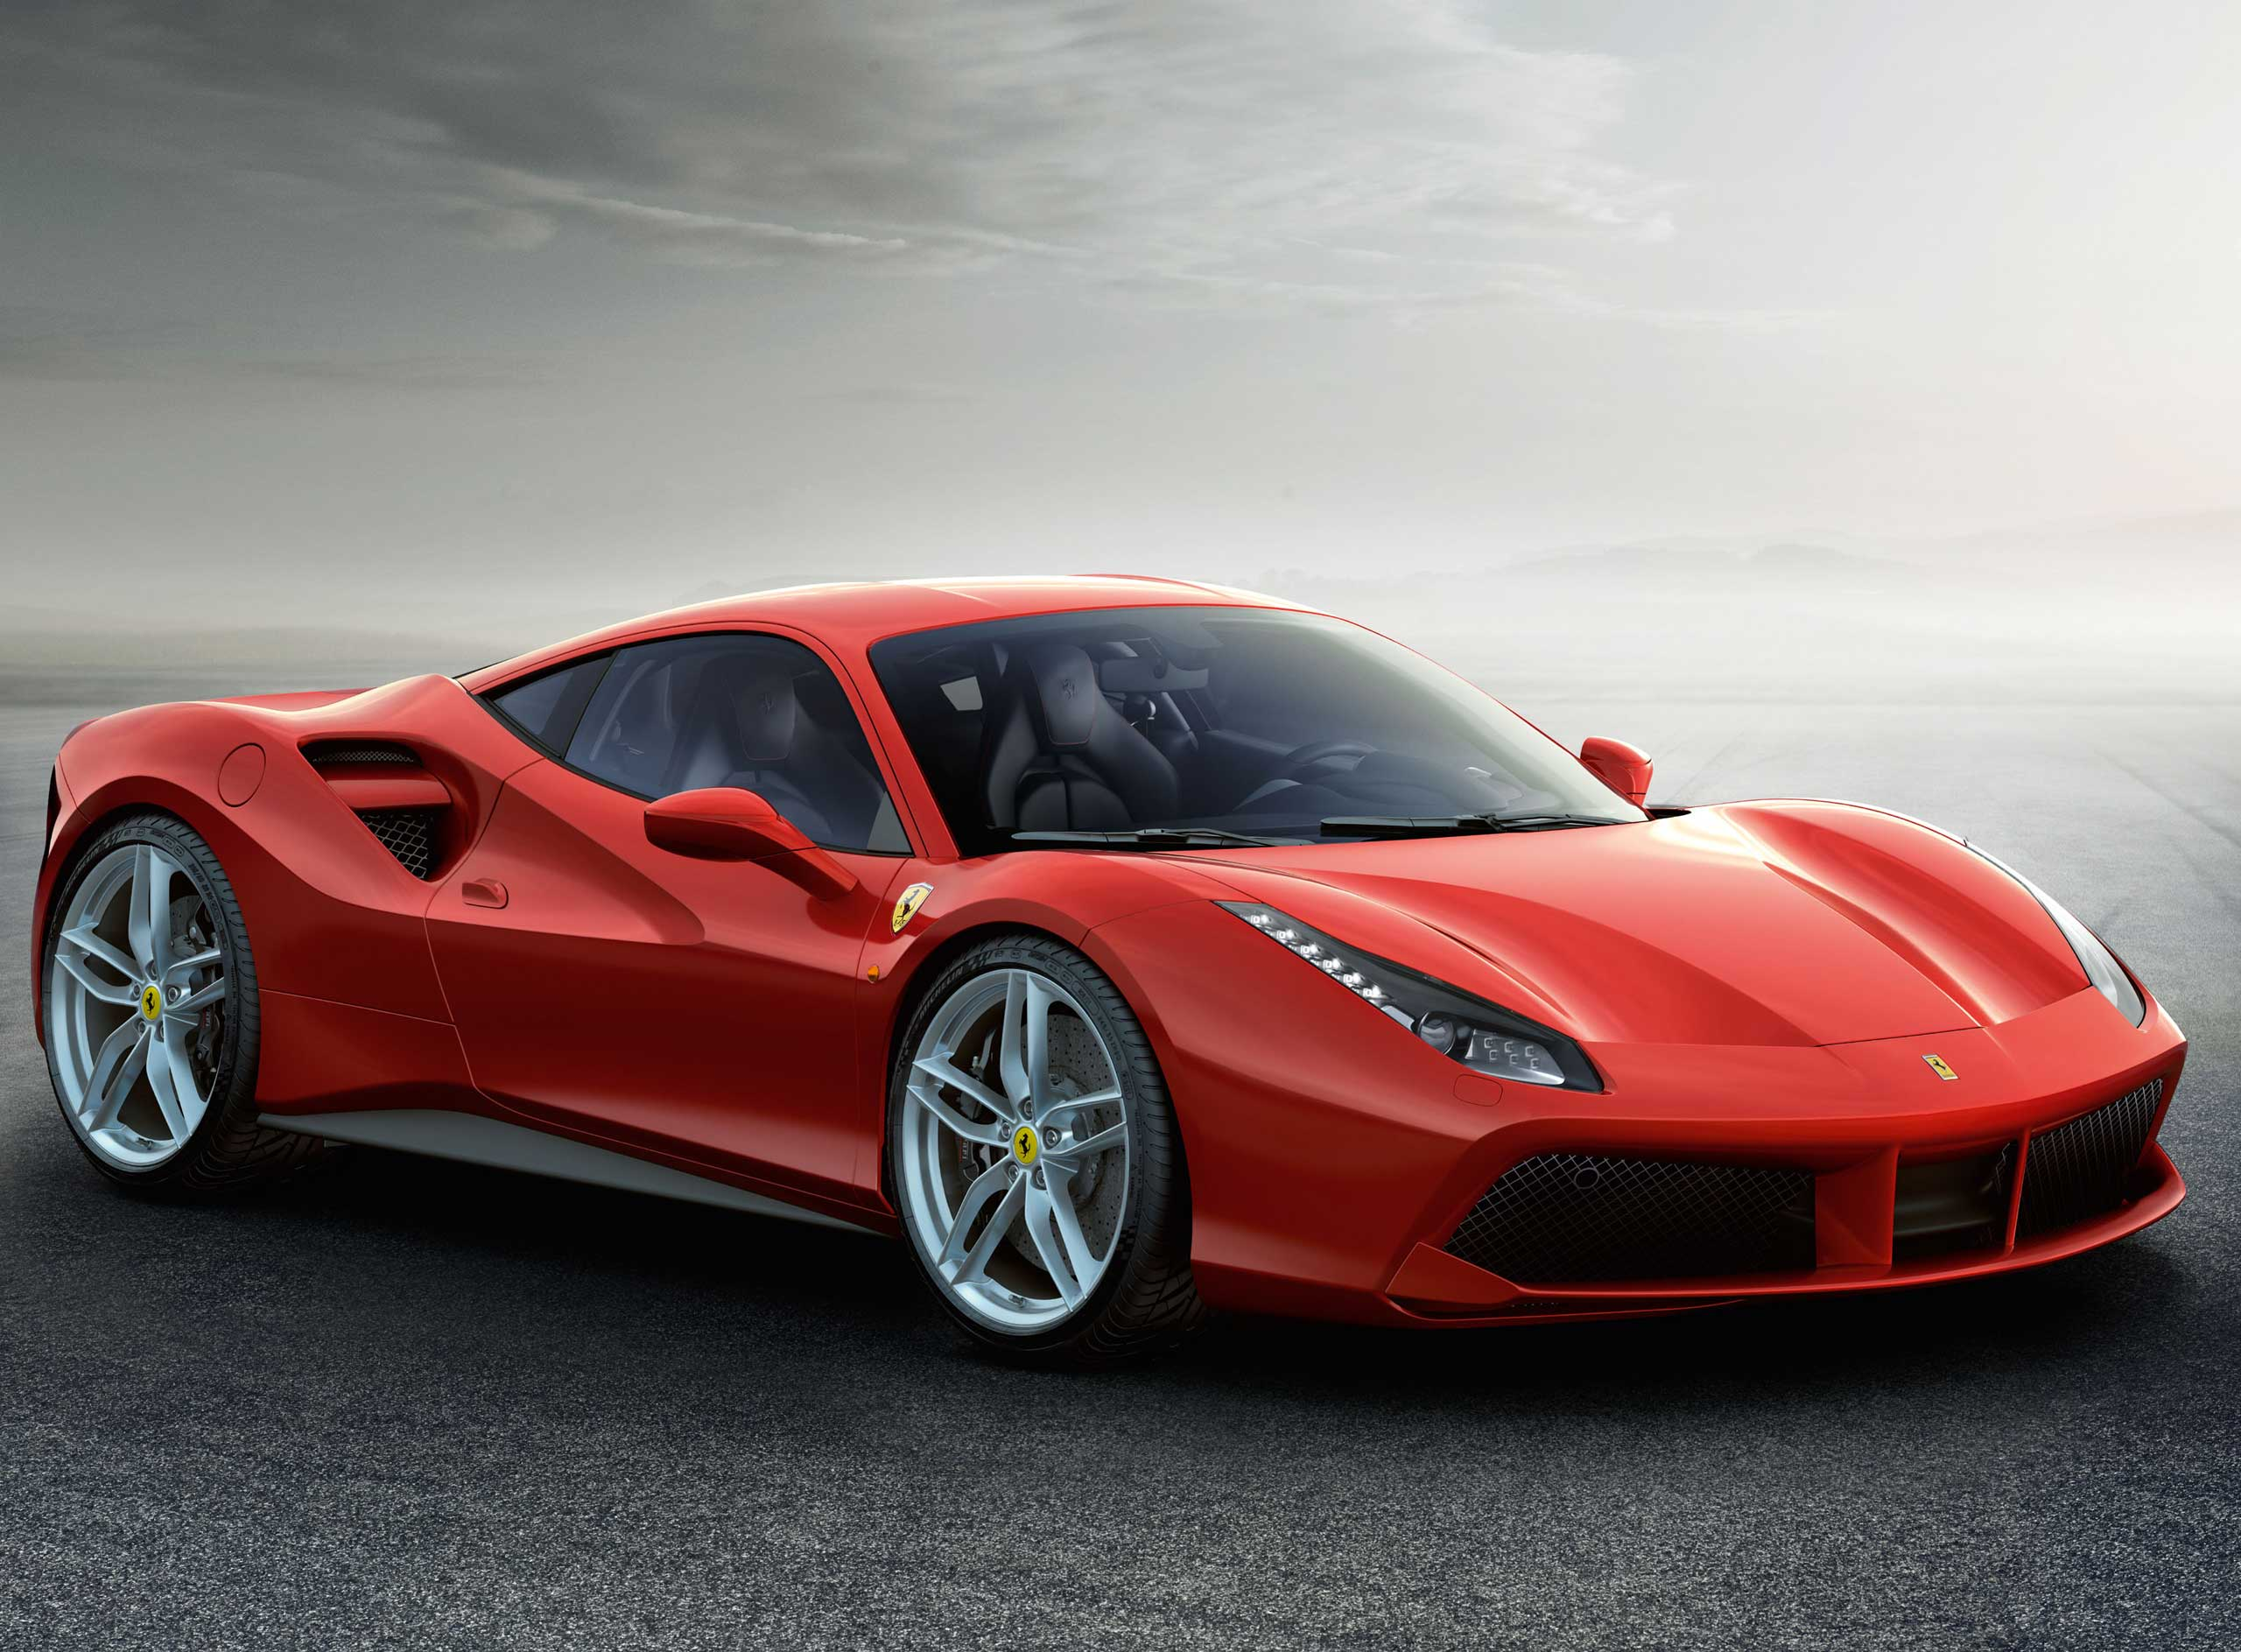 2015: The 488 GTB can accelerate from 0 to 124 miles per hour in 8.3 seconds.